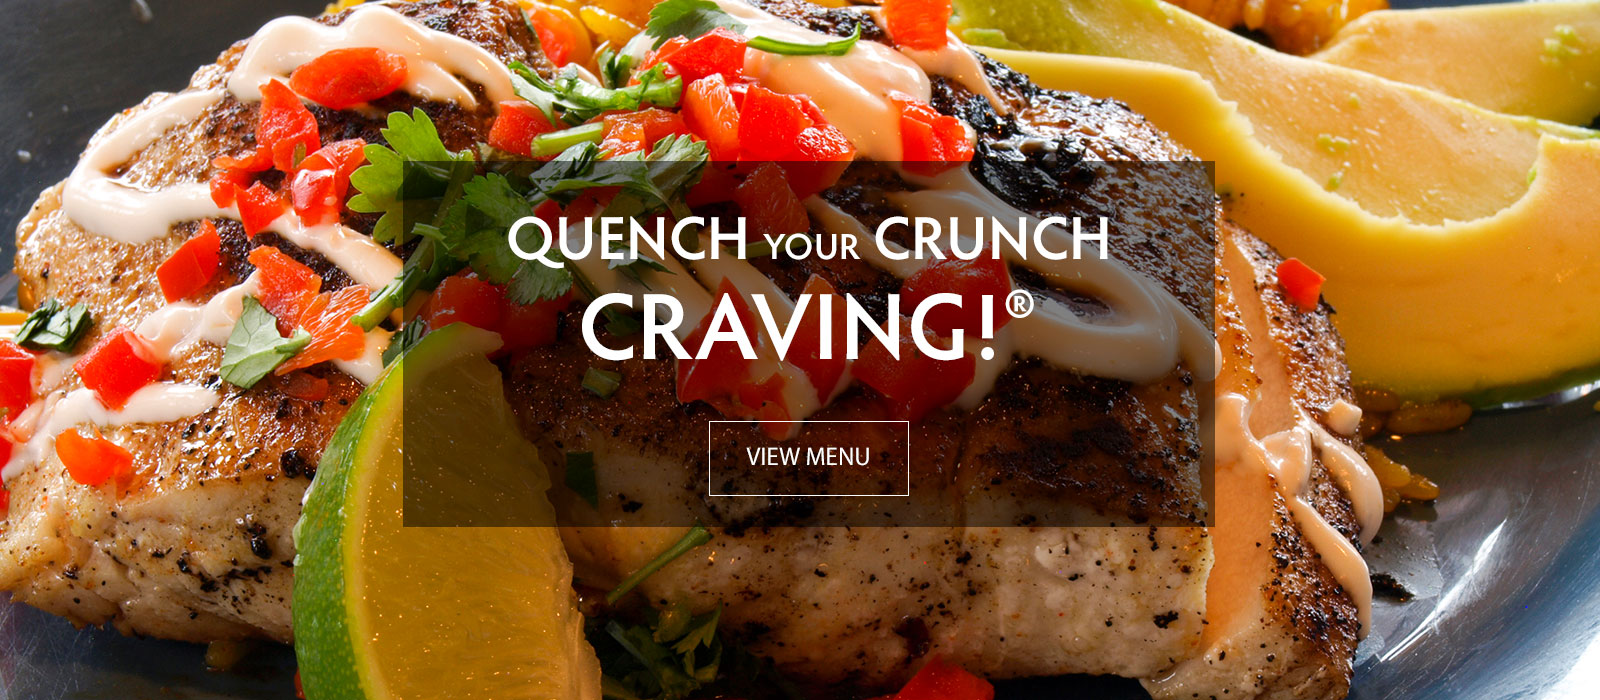 Quench your Crunch Craving!®